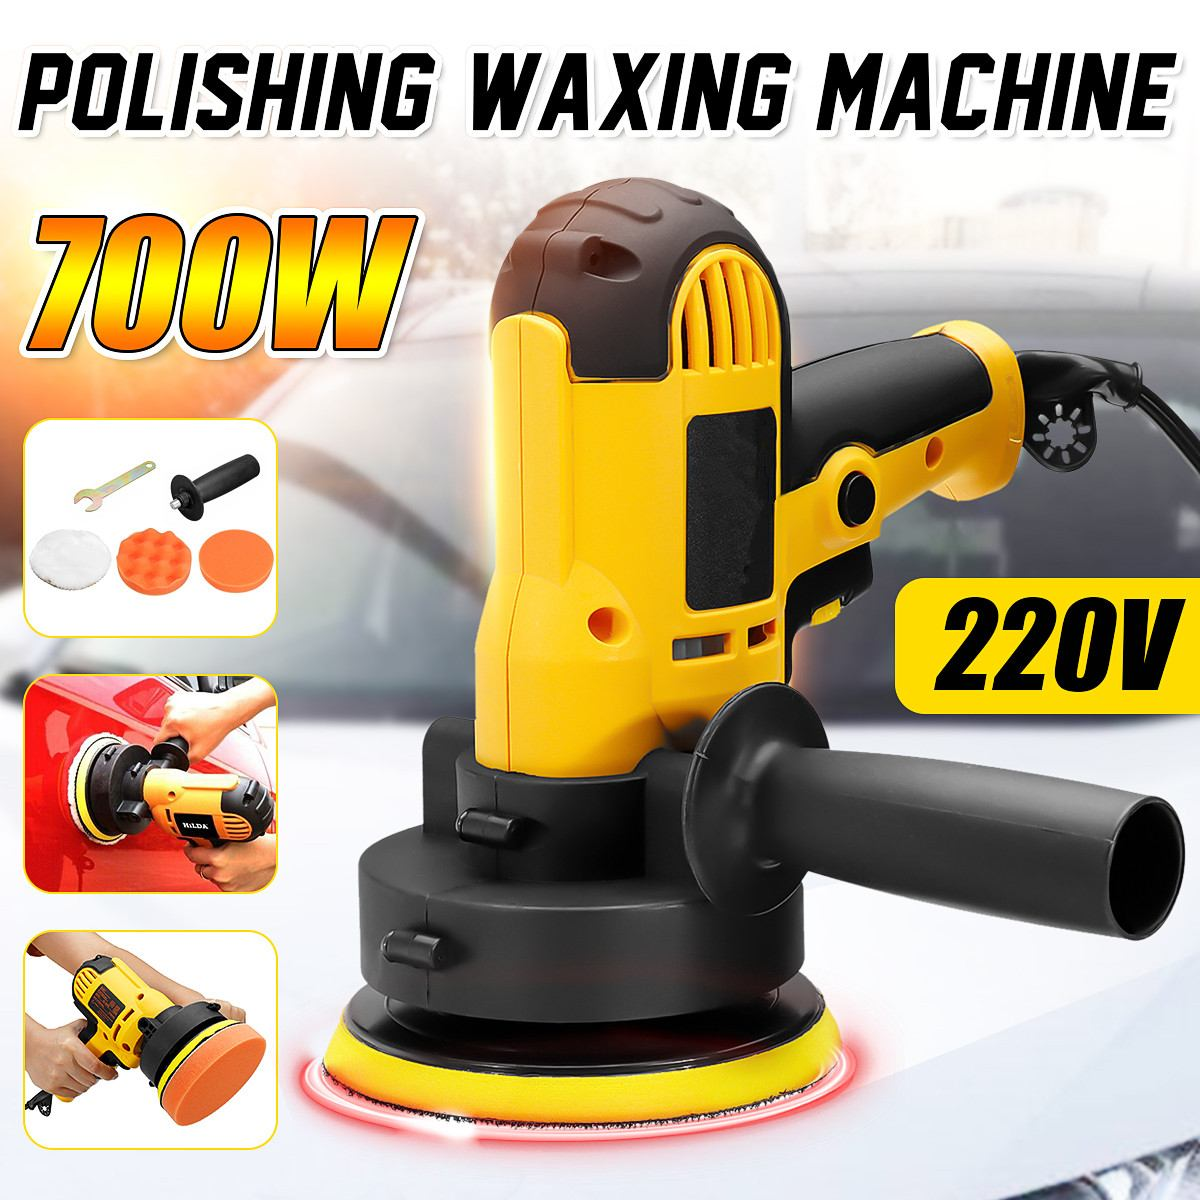 220V 700W Car Polishing Machine Polishing And Waxing Tool High Precision Low Noise Car Scratch Repair Sealing Glazing Machine